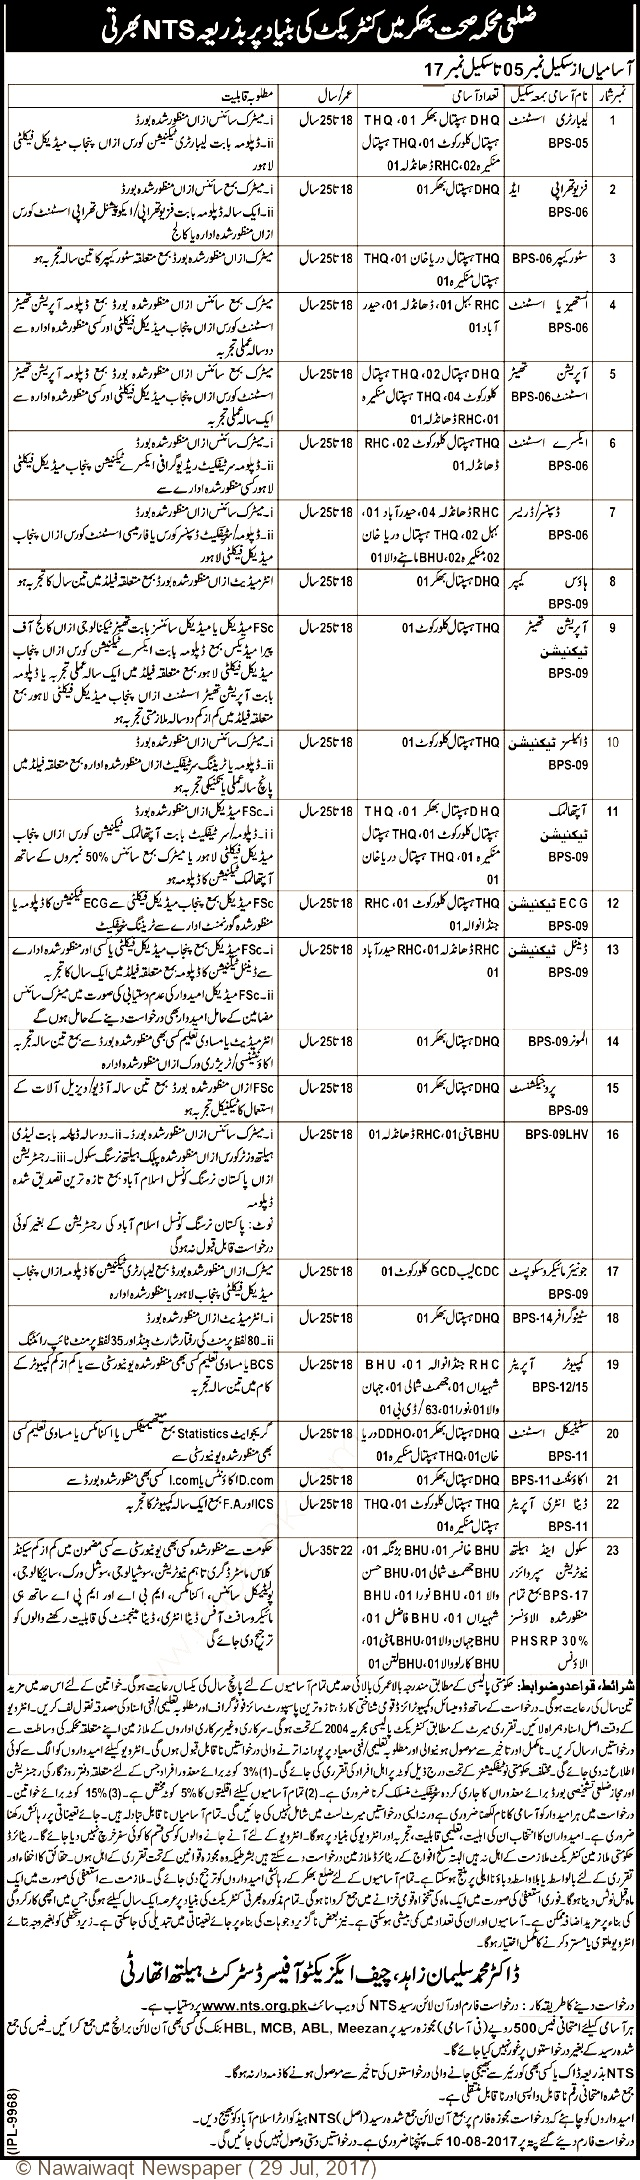 Primary and Secondary health care department jobs 2017 procedure and last date to apply